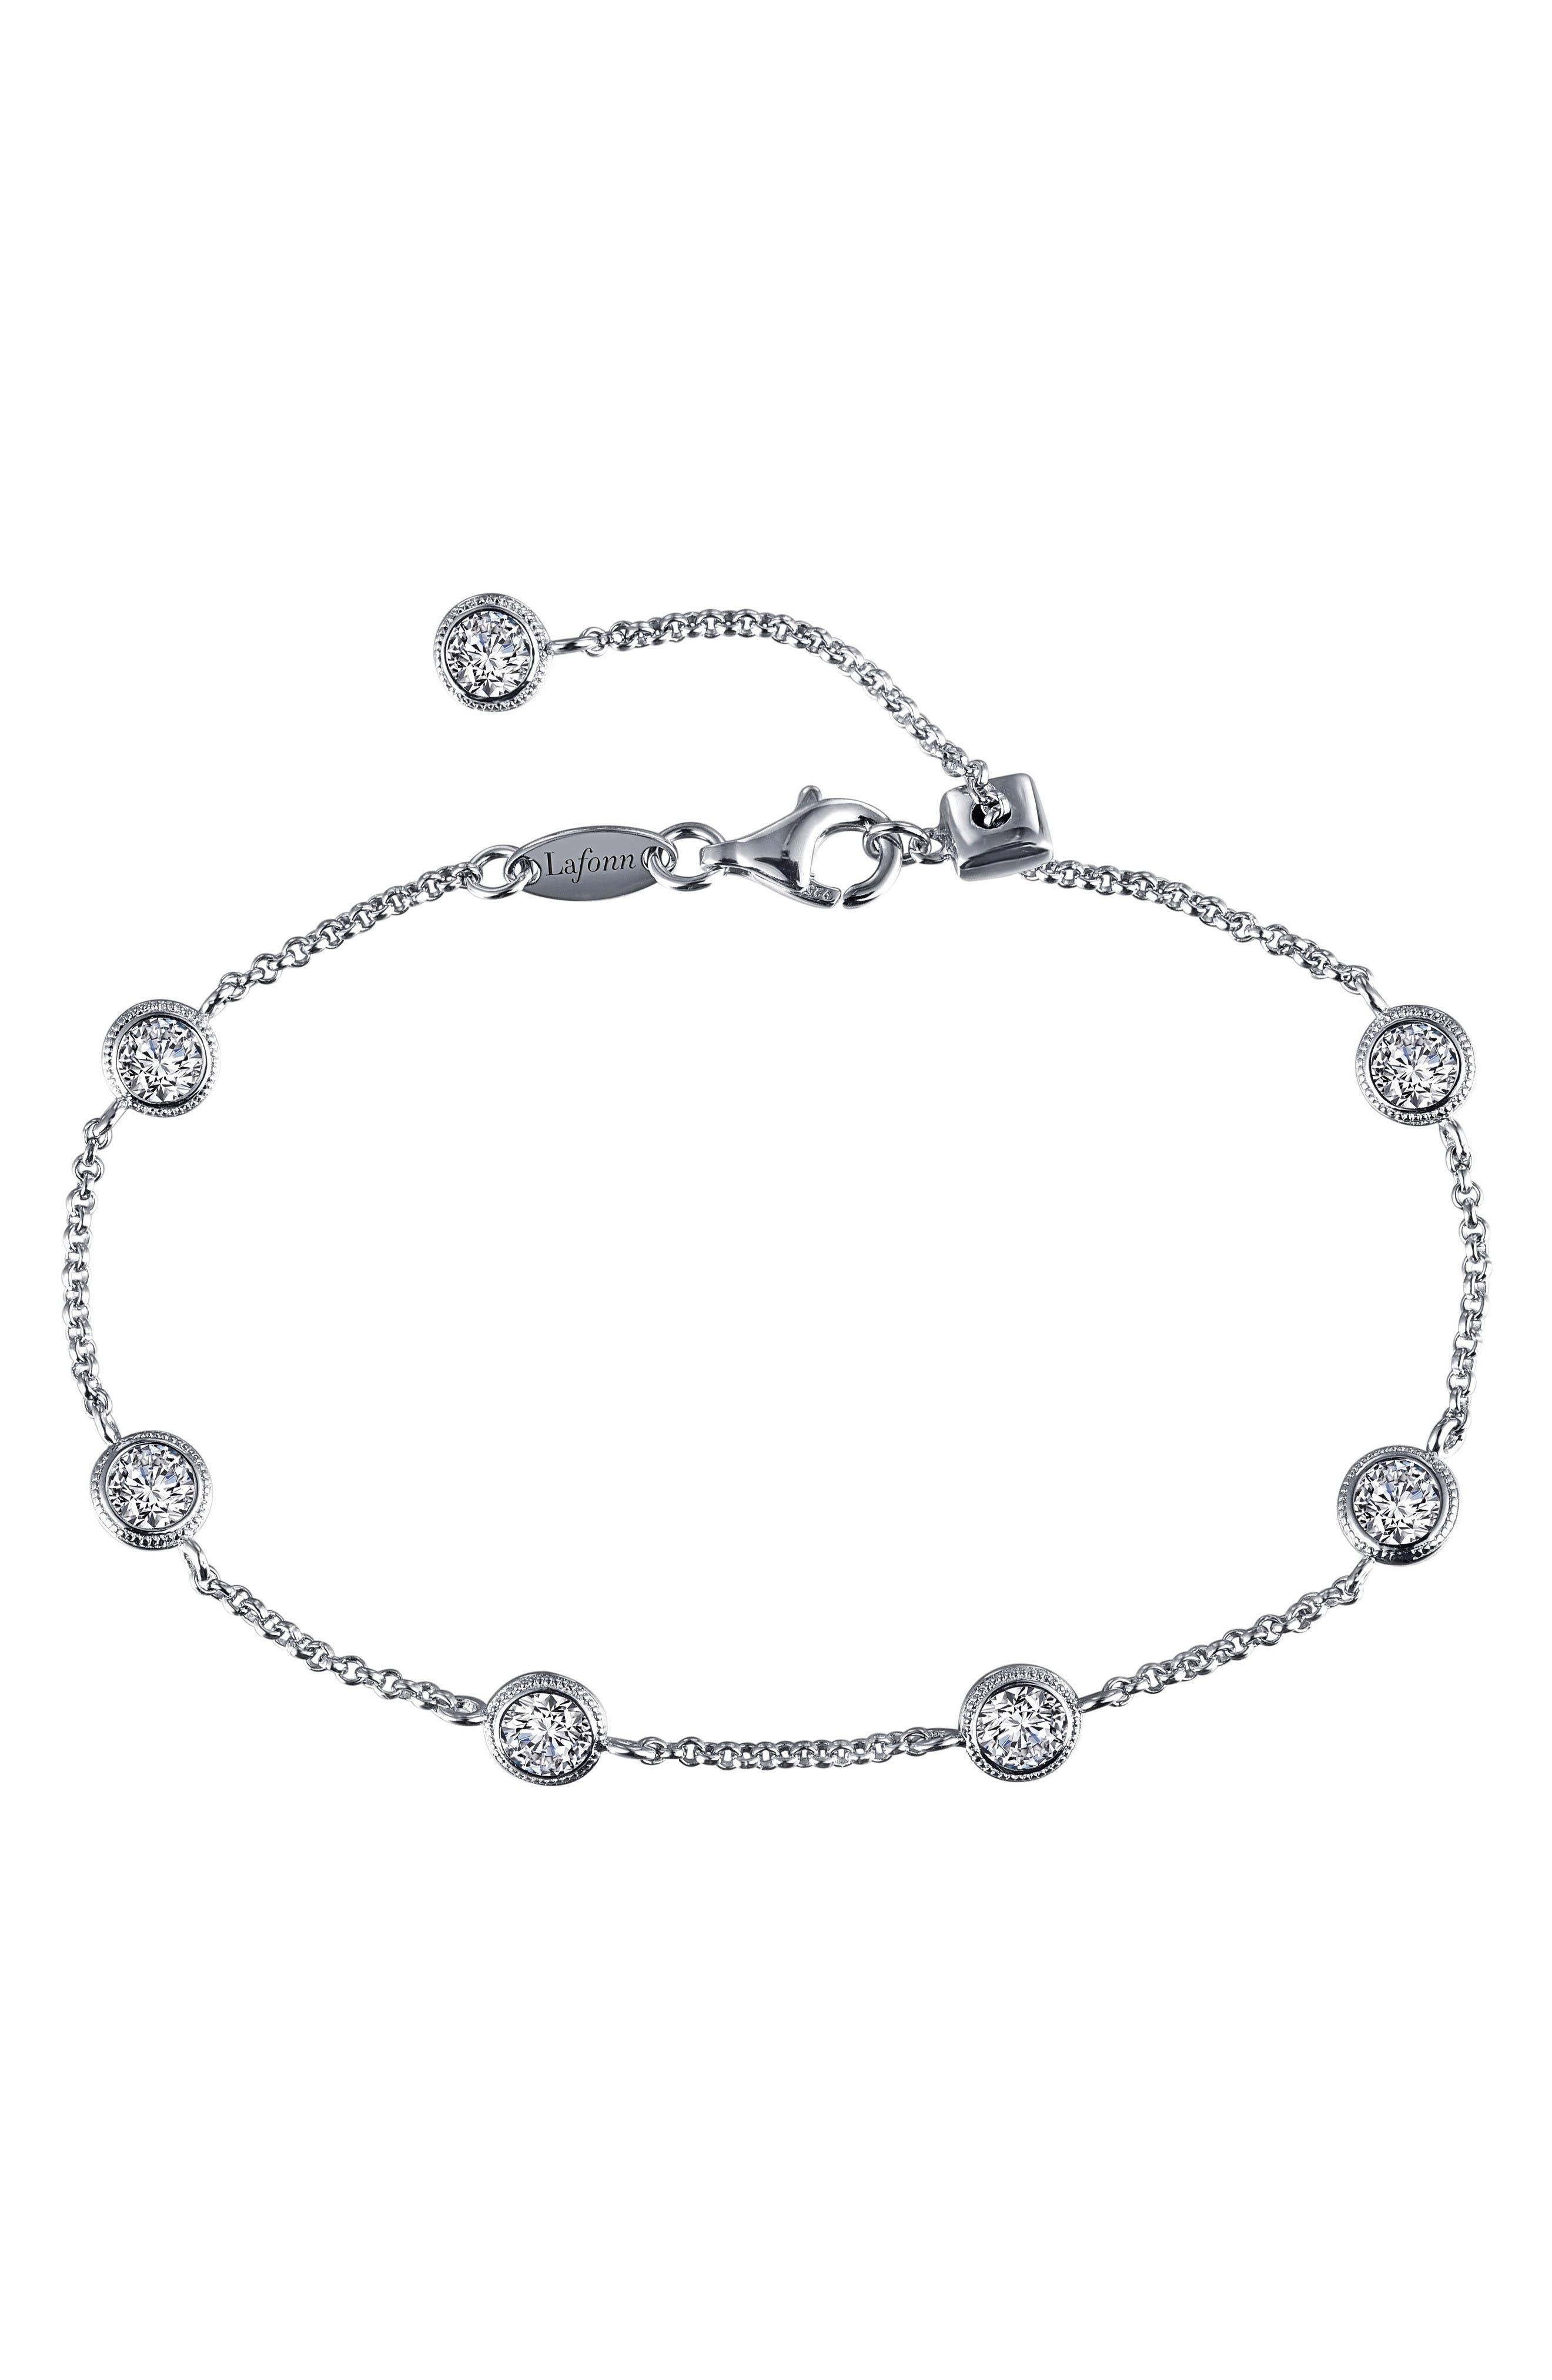 Lafonn Simulation Diamond Station Bracelet